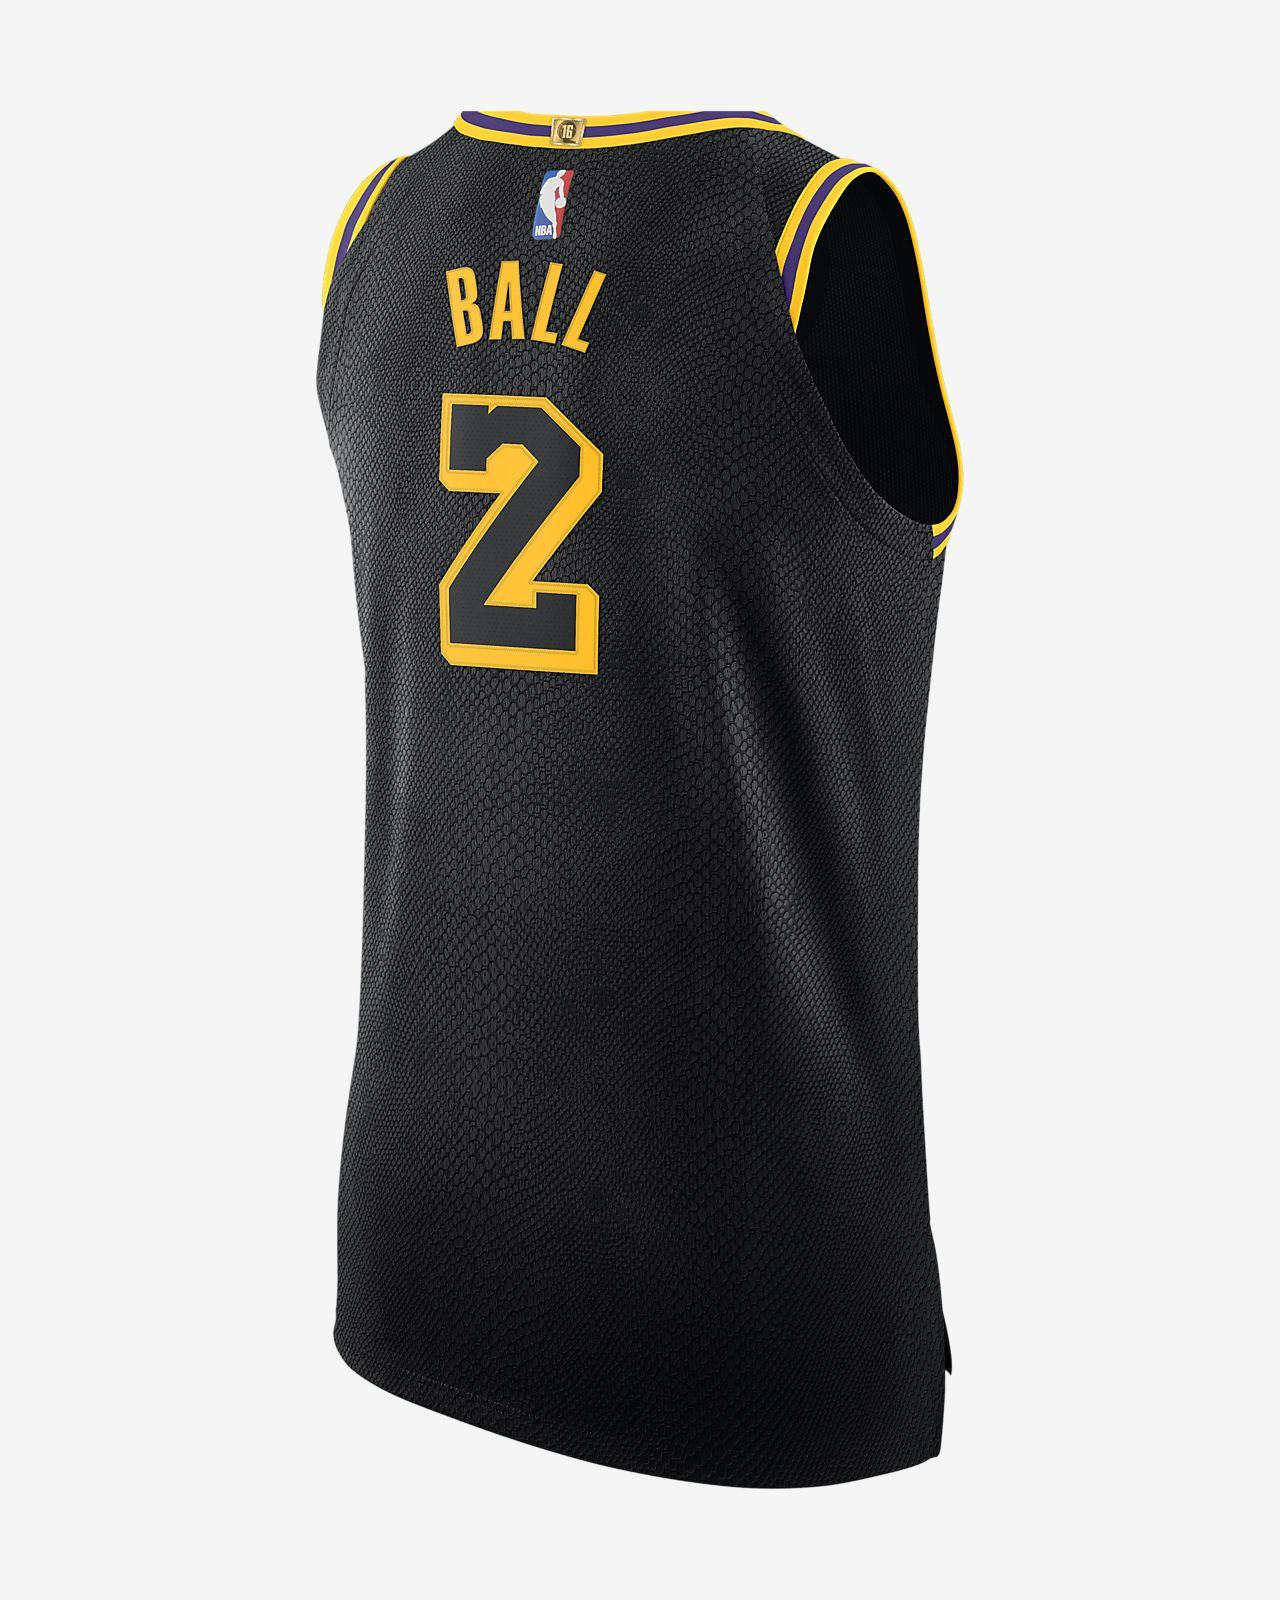 66f6f21bd3d ... Maillot connecté Nike NBA Lonzo Ball City Edition Authentic (Los  Angeles Lakers) pour Homme